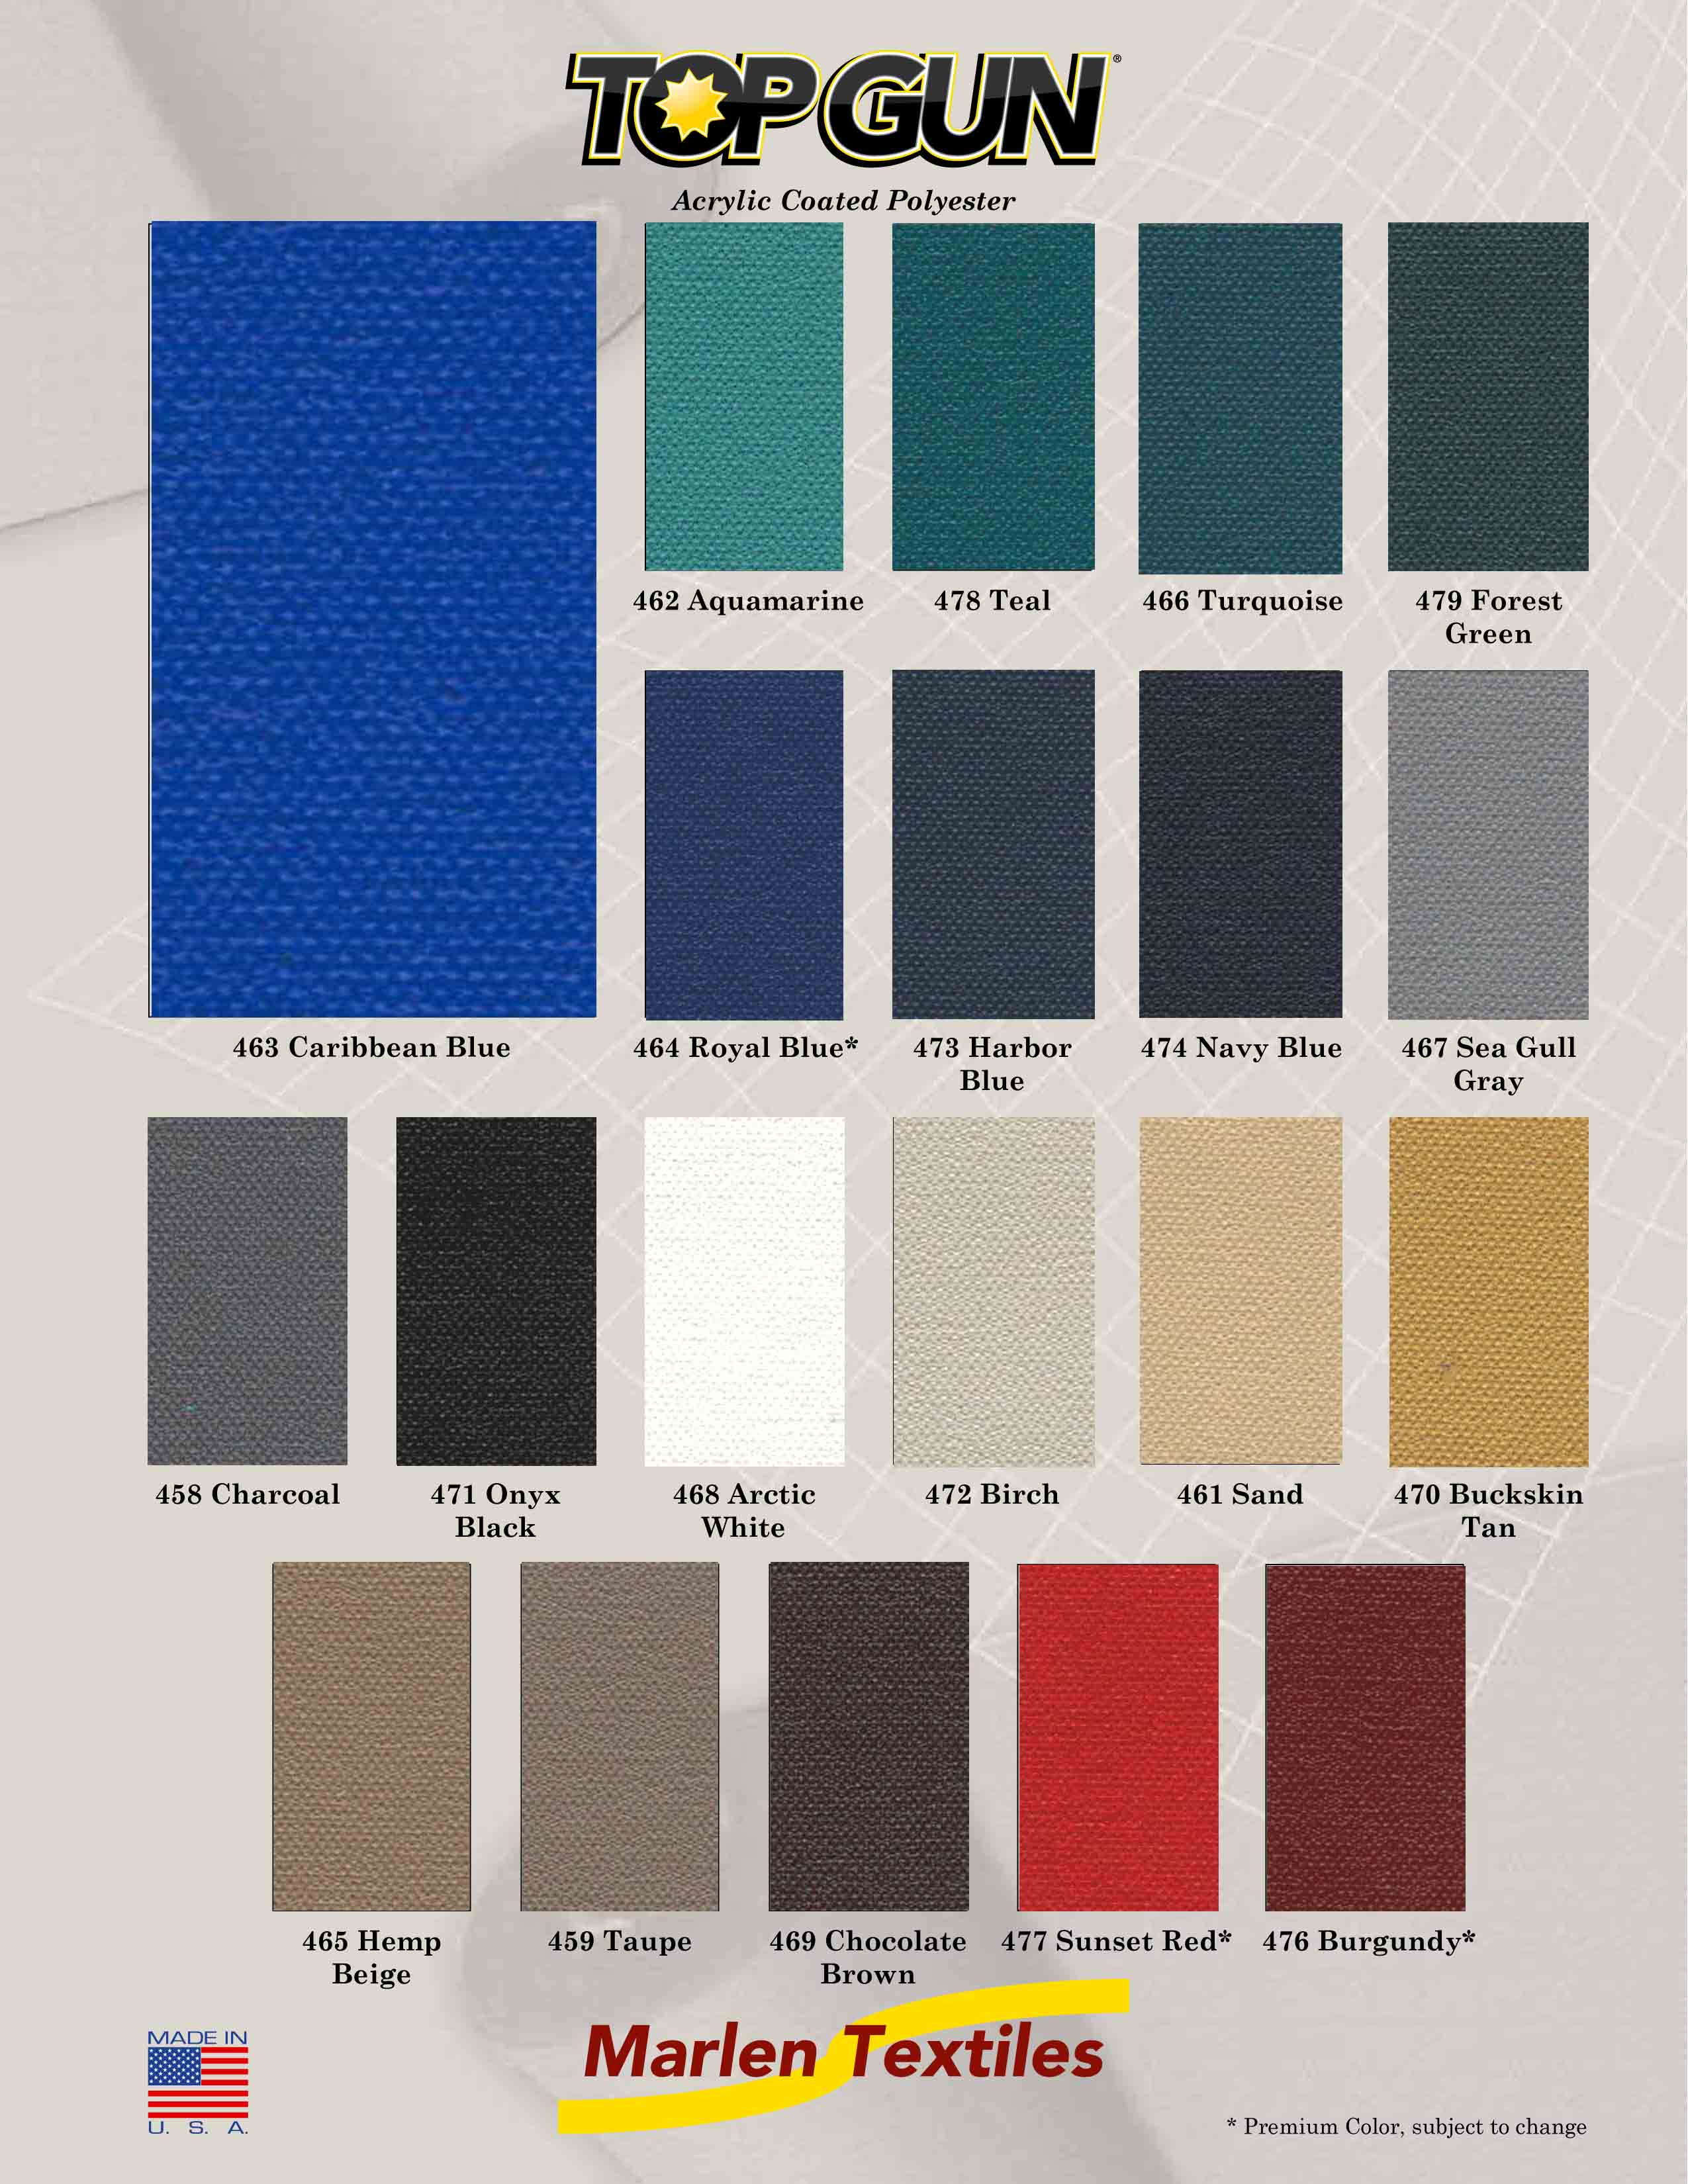 Marlen textiles top gun acrylic coated polyester fabric colors if you dont find a color that matches your needs custom colors are easily made nvjuhfo Images